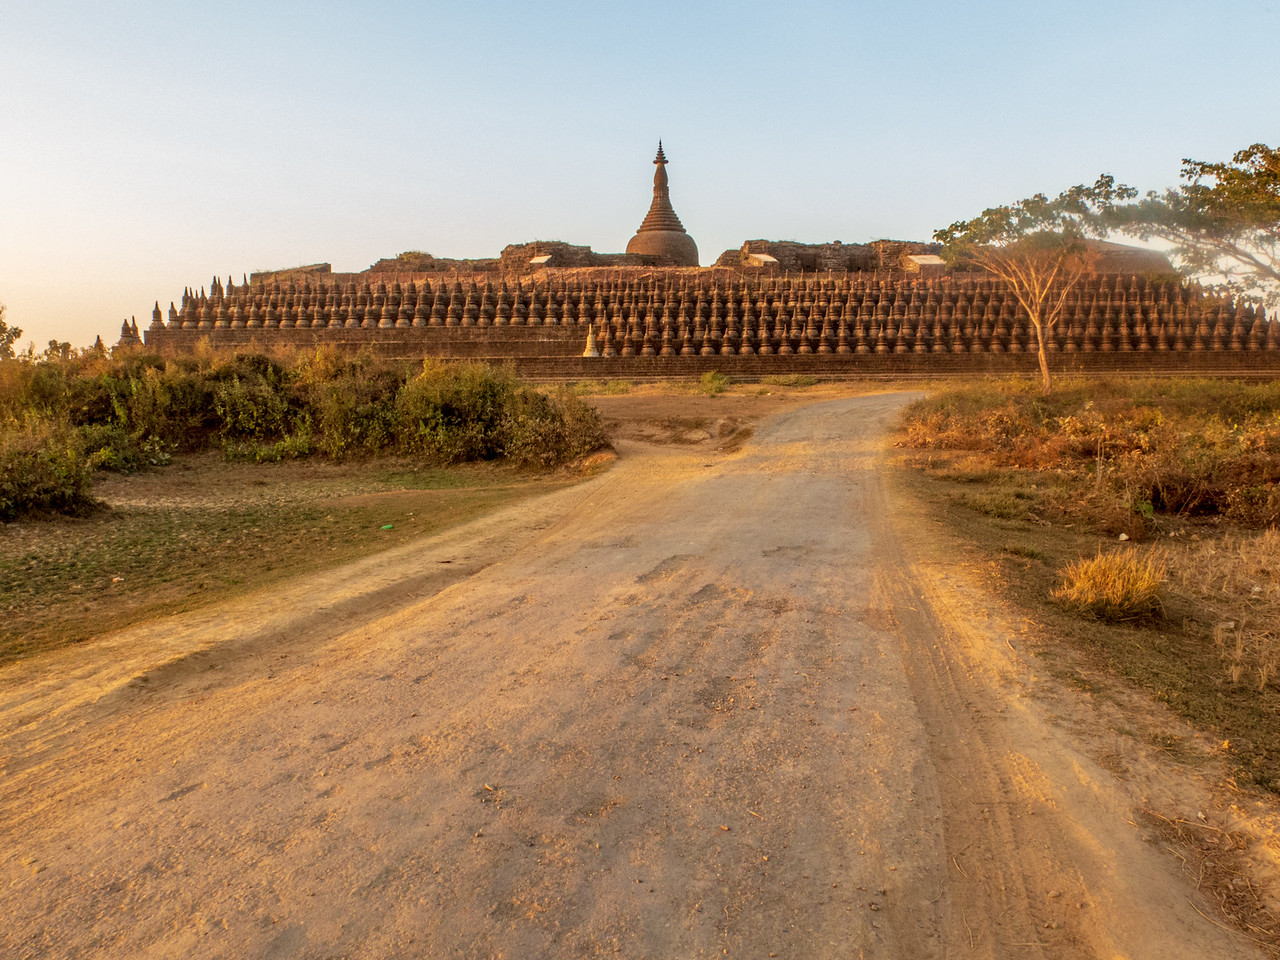 Exterior View of Kothaung Paya Temple in Mrauk OO